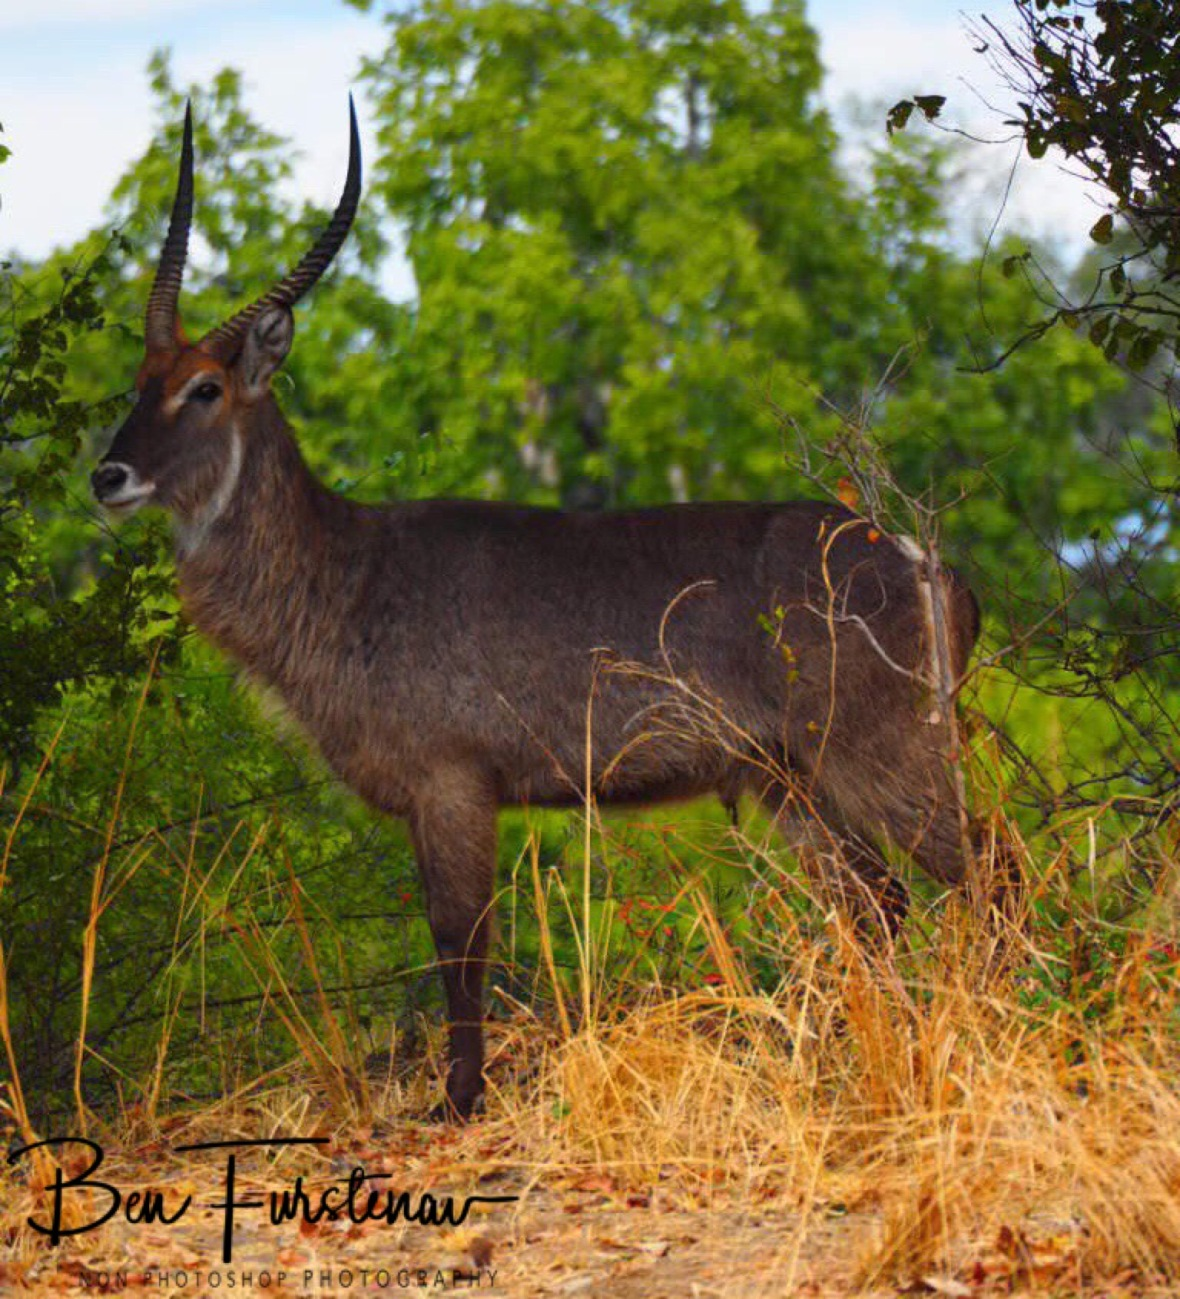 Waterbuck on the look out, South Luangwa National Park, Zambia